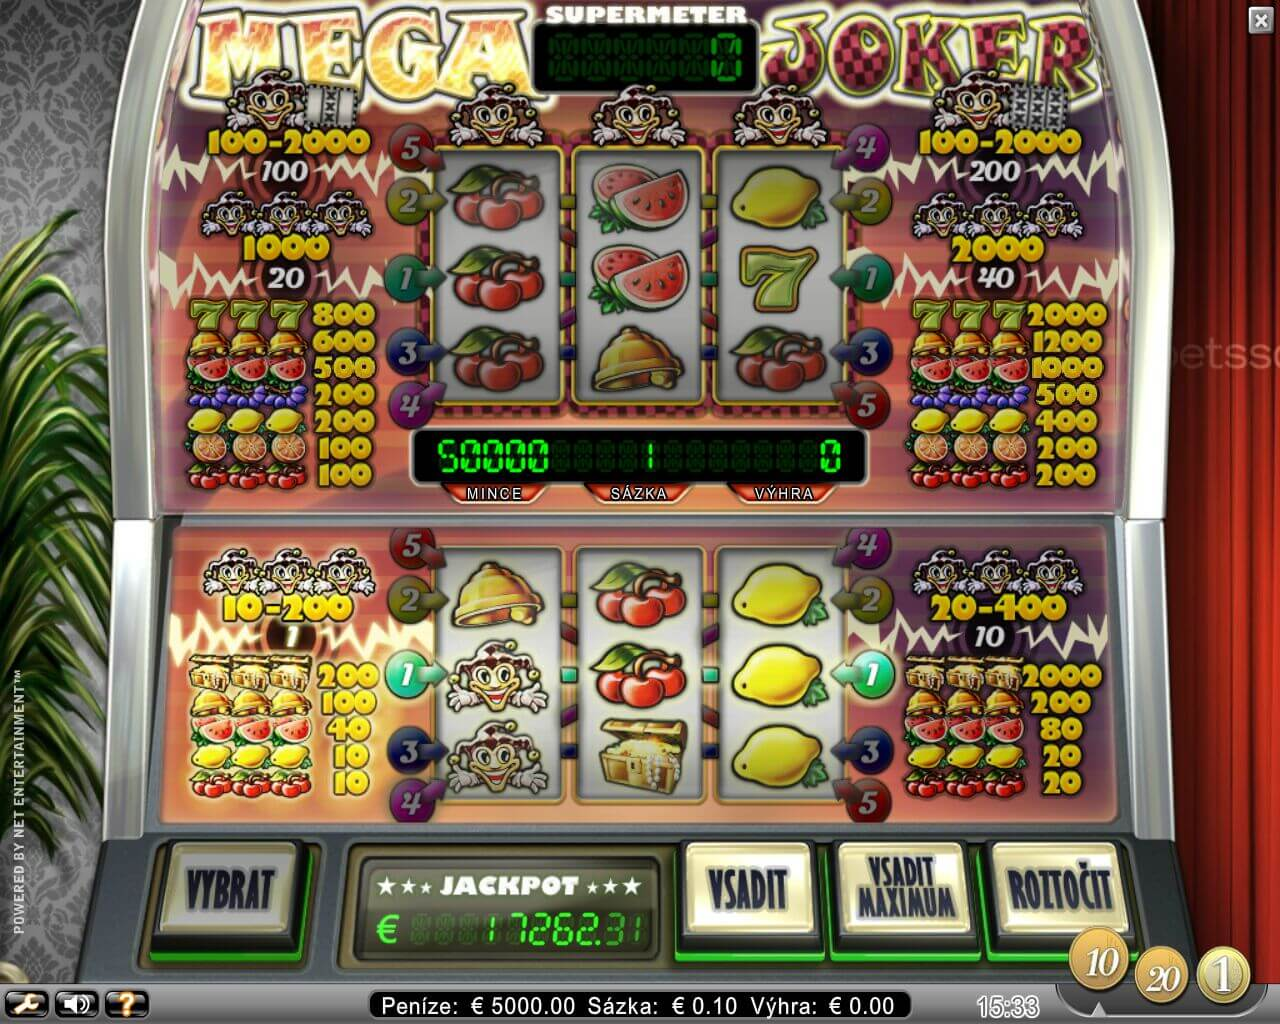 Play texas holdem online with real money